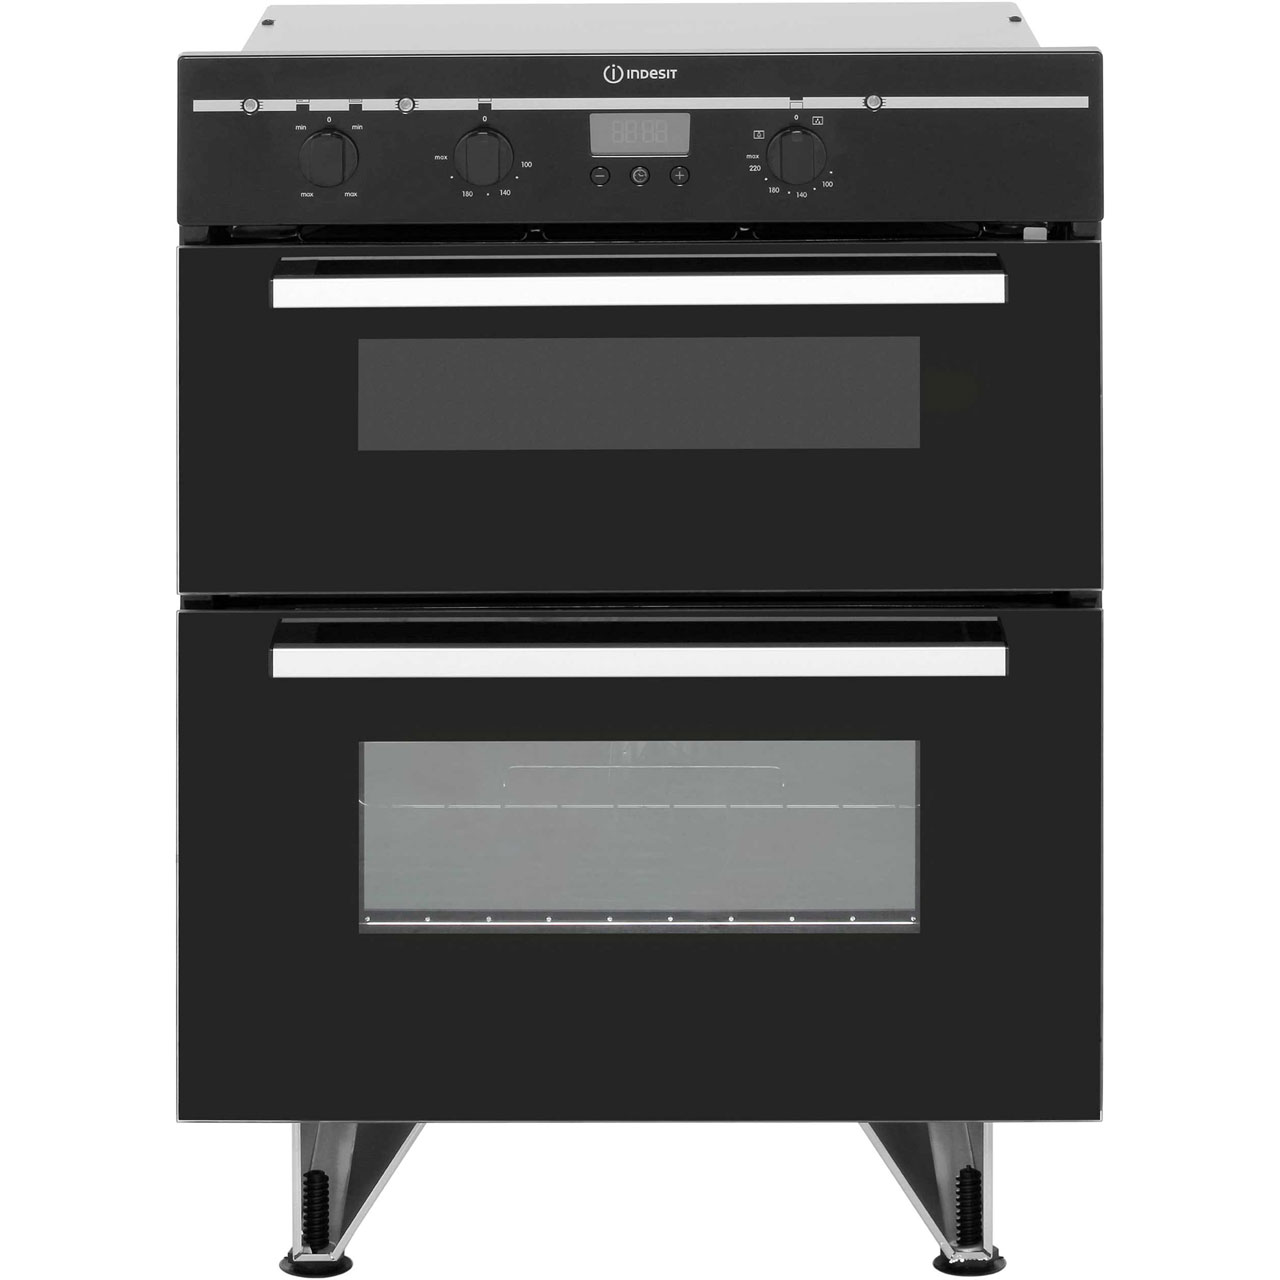 buy cheap indesit built oven compare cookers ovens. Black Bedroom Furniture Sets. Home Design Ideas